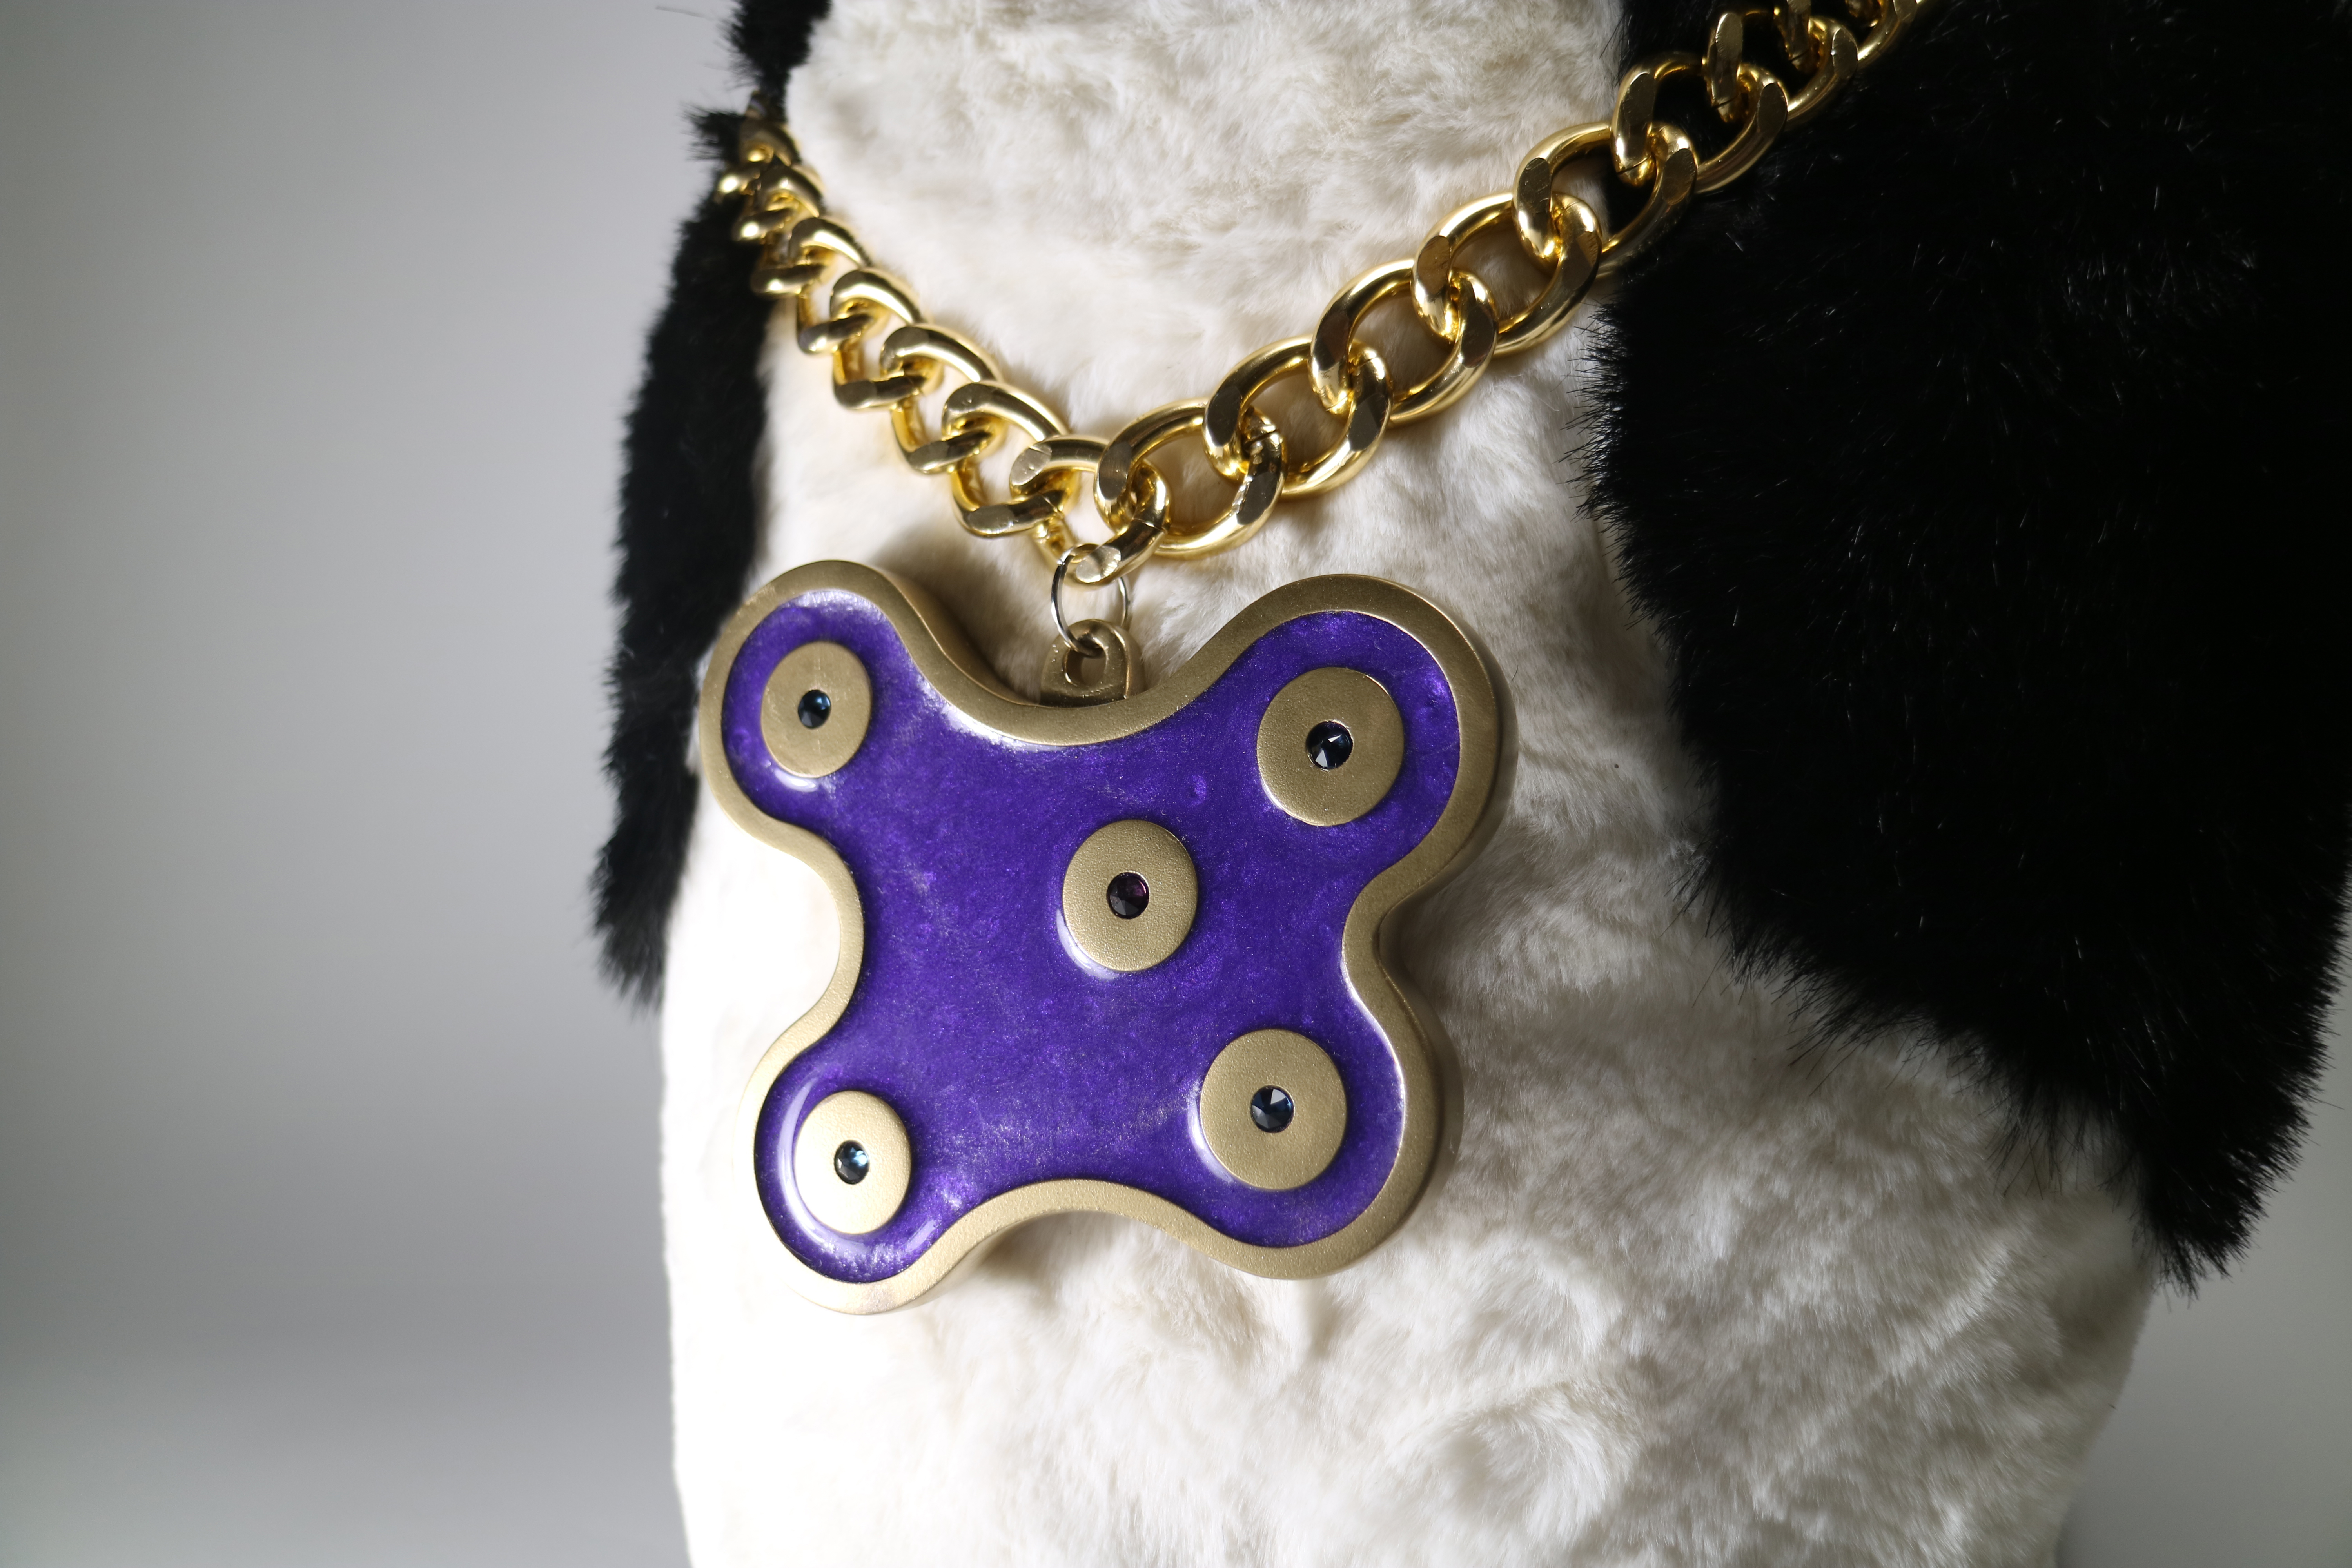 Picture of Pier9: Eurion Jewelry for Endangered Animals